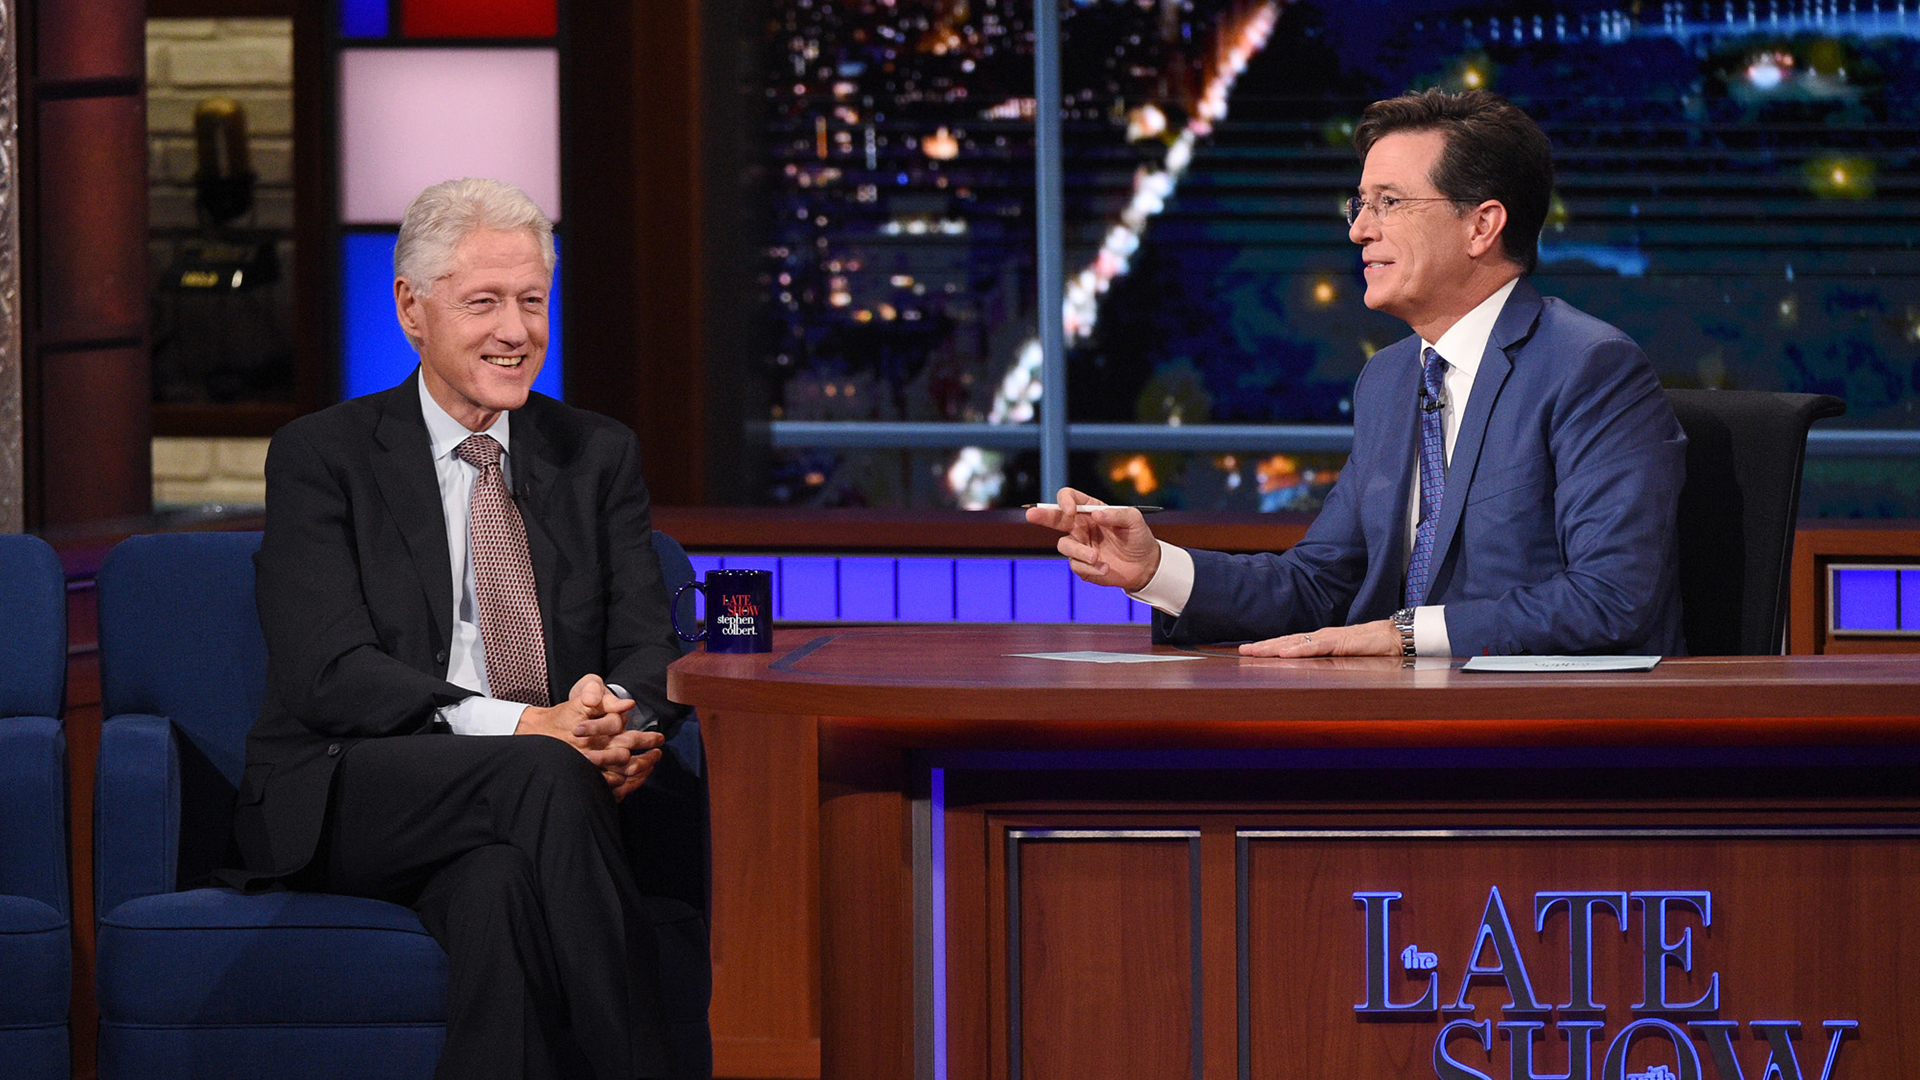 Bill Clinton and Stephen Colbert